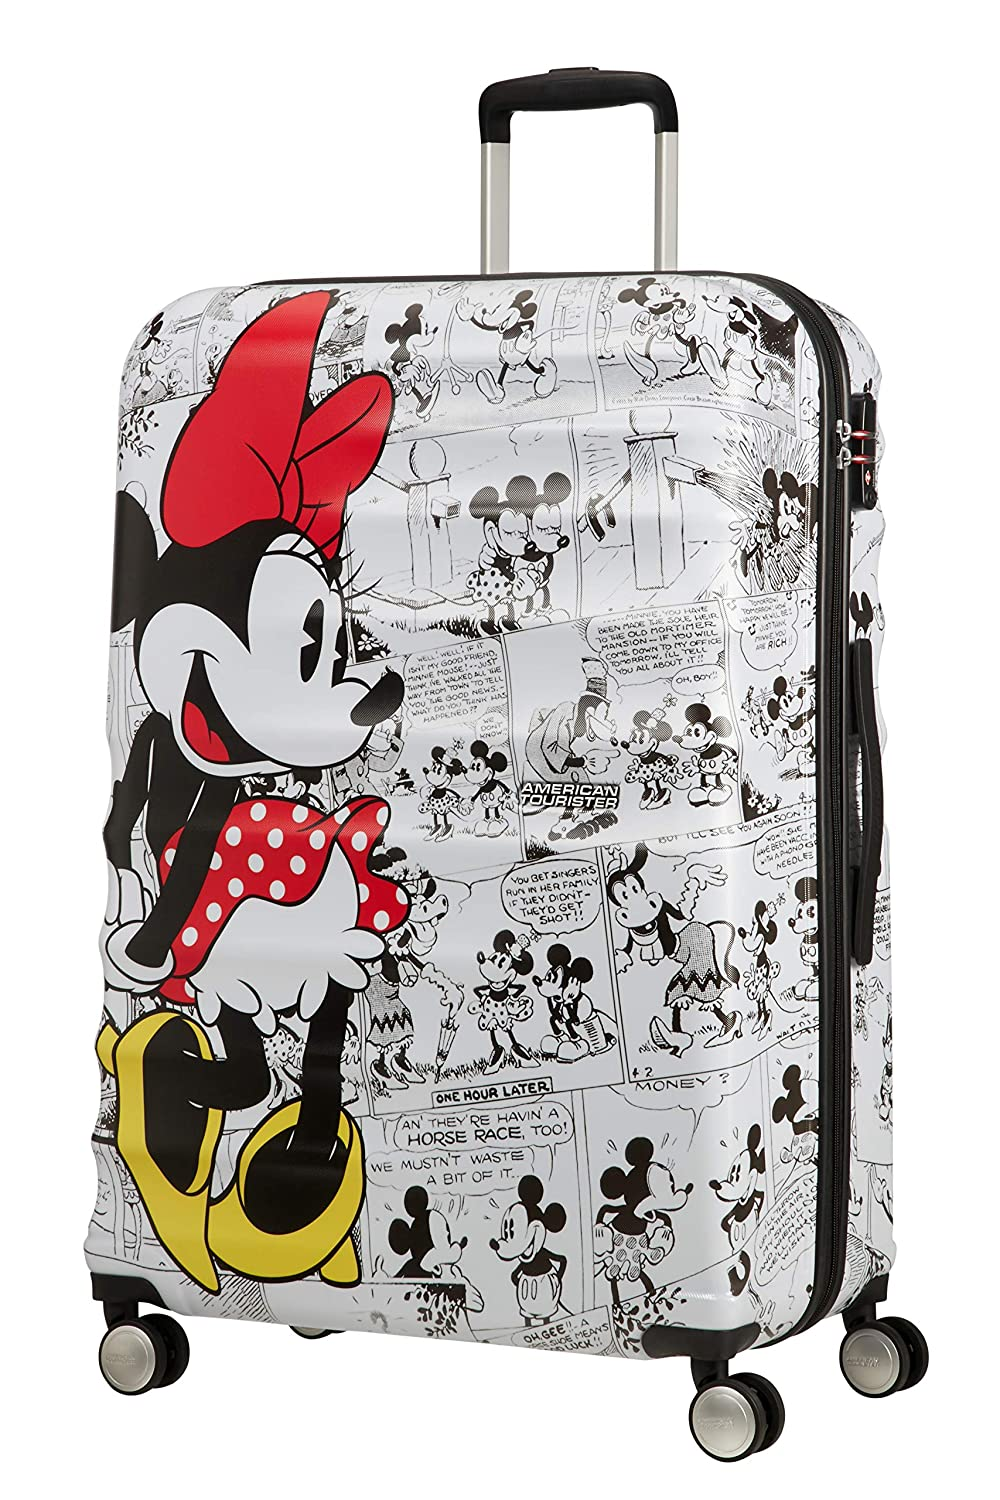 77 cm Blanc Spinner Large Bagage Cabine 96 liters American Tourister Wavebreaker Disney Minnie Comics White